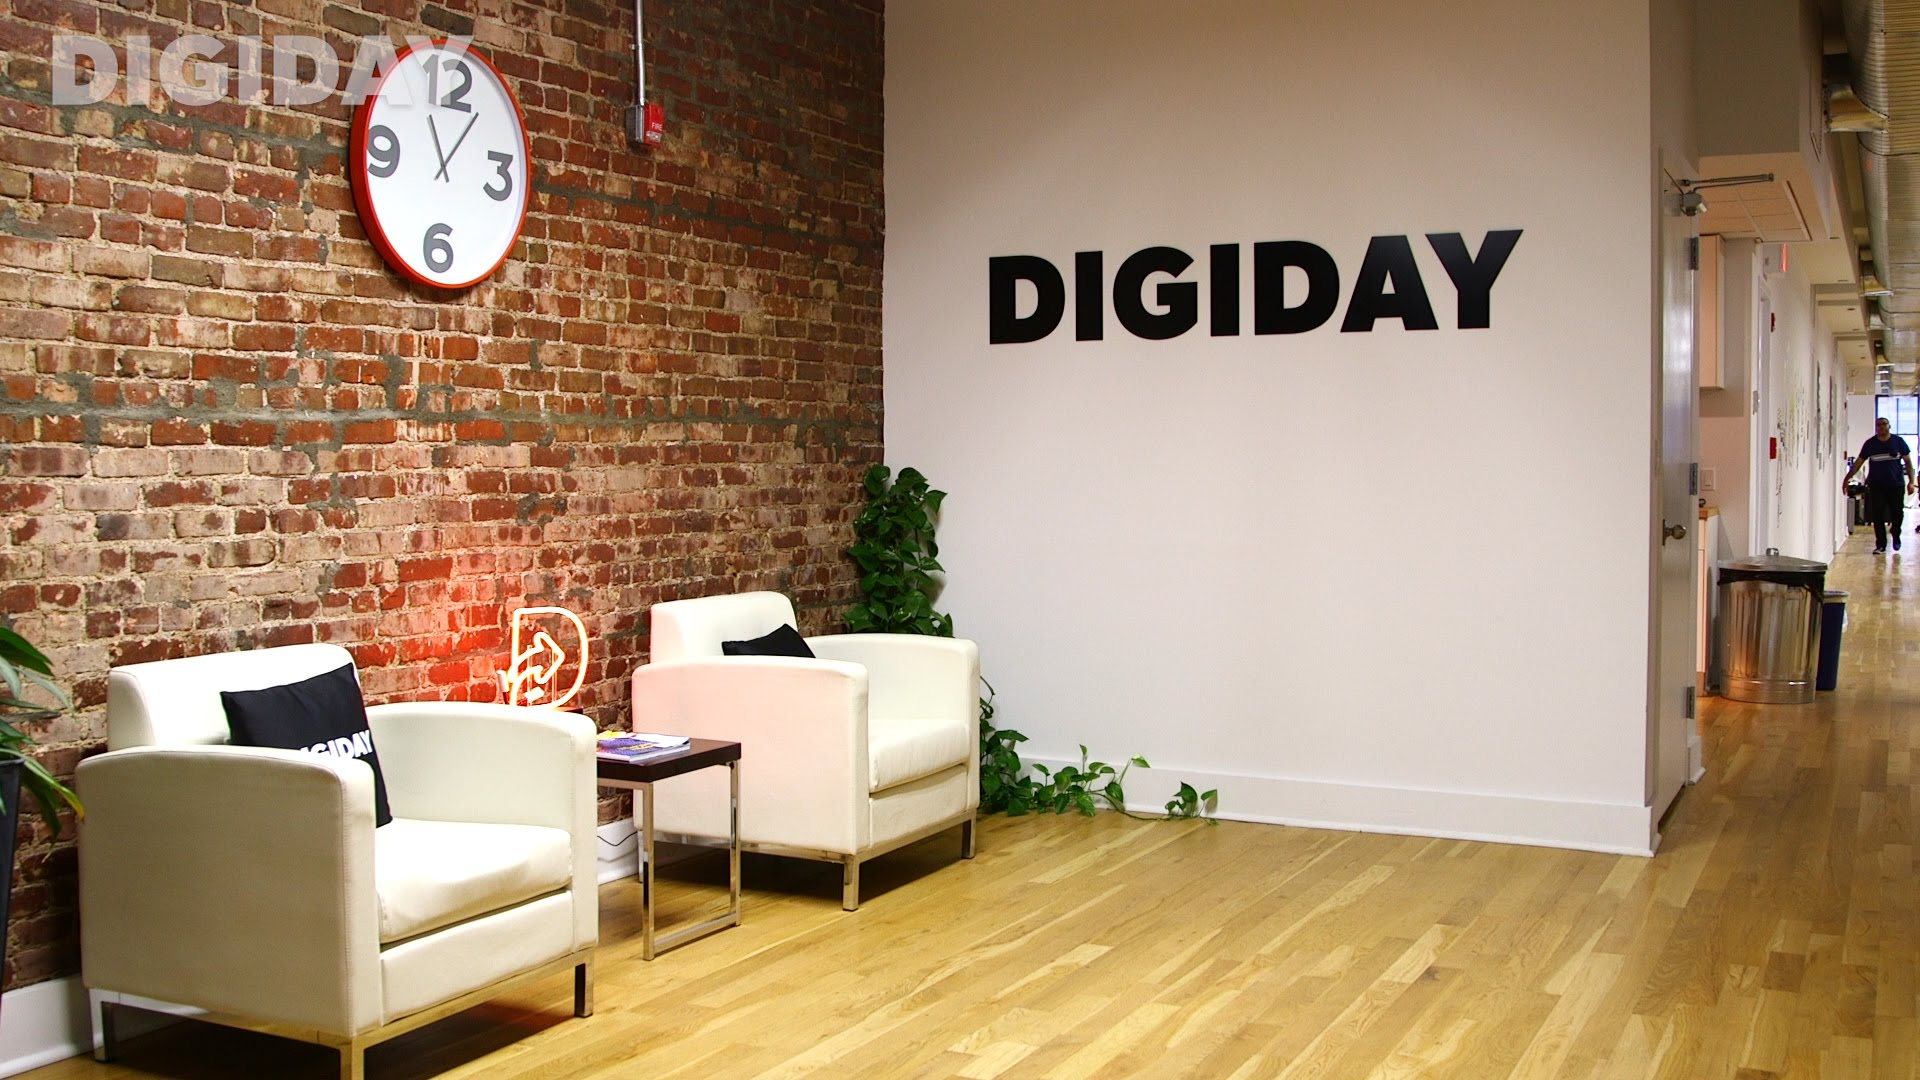 Digiday's office in New York